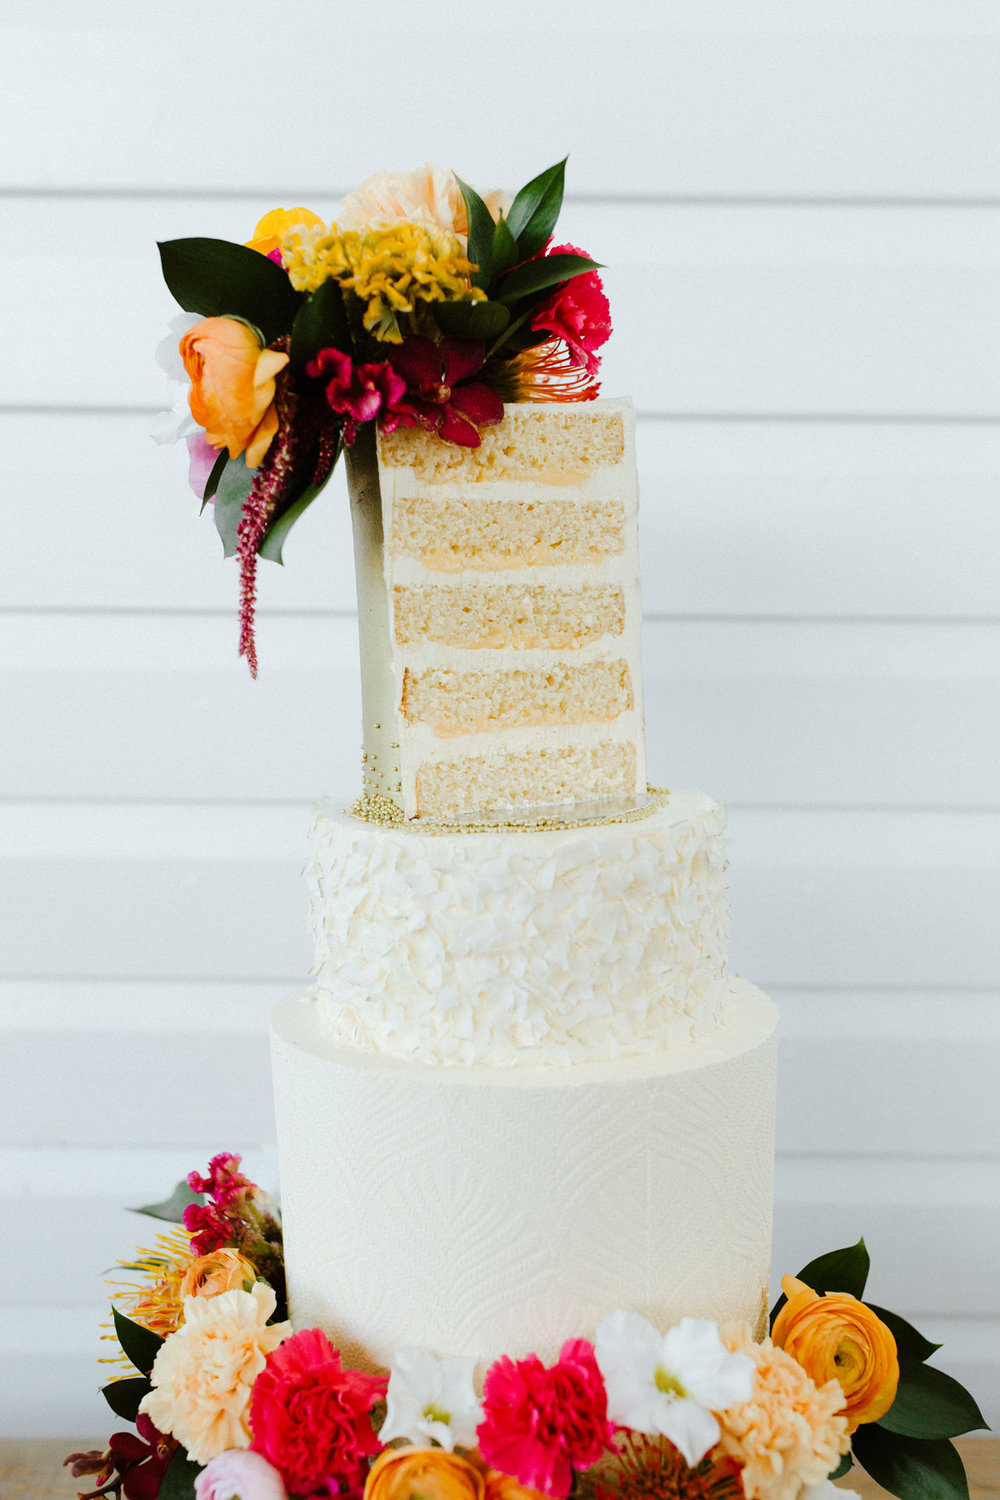 How to Nail a Tropical Wedding Theme - THE BRIDES TREEThe cake featured in this zesty and fun shoot by Milk and Honey Cake Creative was a deliciously on-theme tiered passionfruit and coconut cake. The top tier was covered in gorgeous gold, the mid layer in a coconut flake ruffle hand-painted with a gold trim and the base layer stamped with a beautiful ornate pattern.